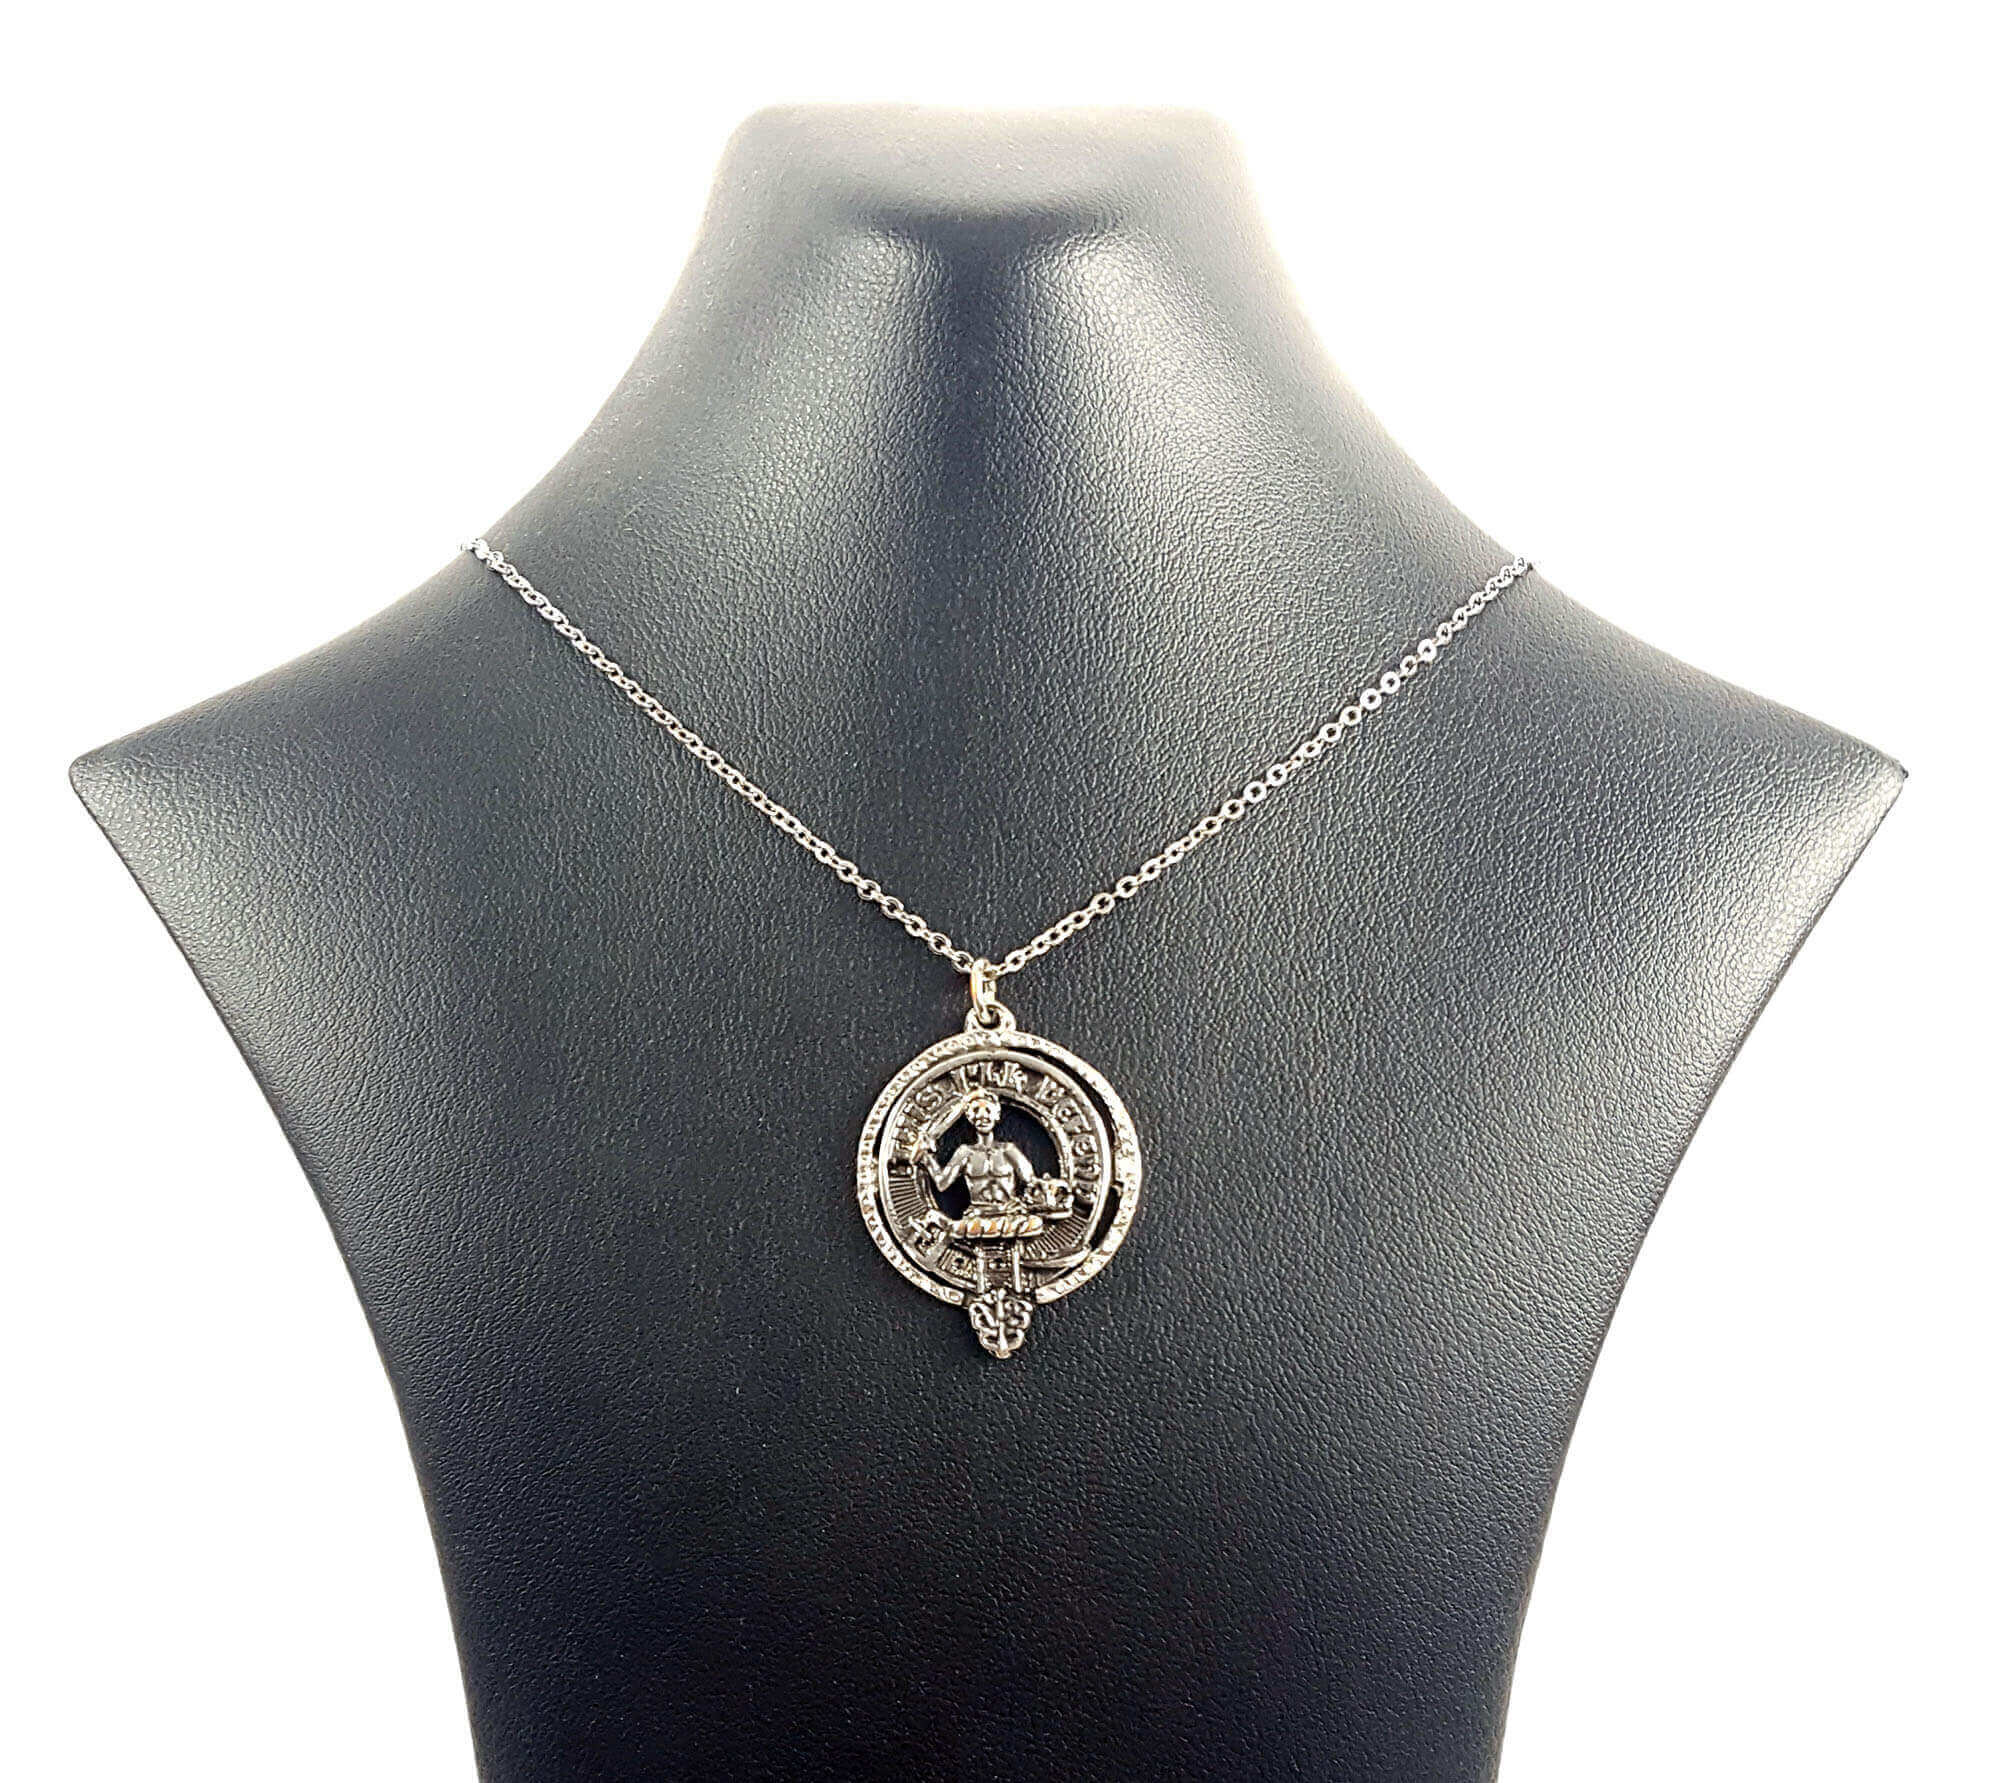 MacFarlane Clan Crest Necklace